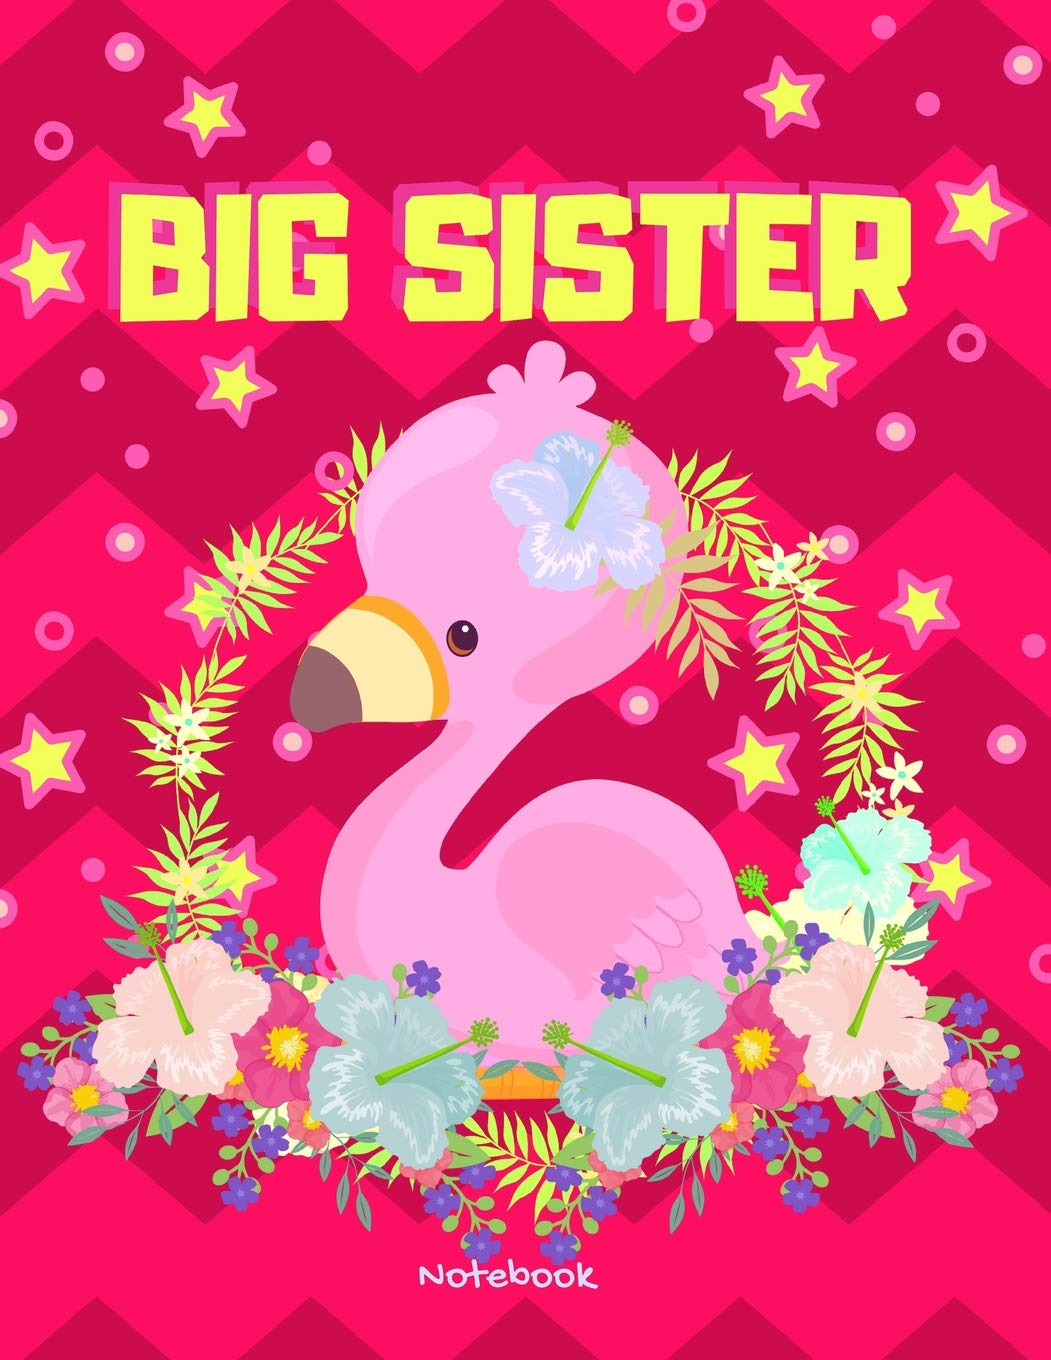 Big Sister Notebook: Personalized Pink Flamingo Stars Draw ...